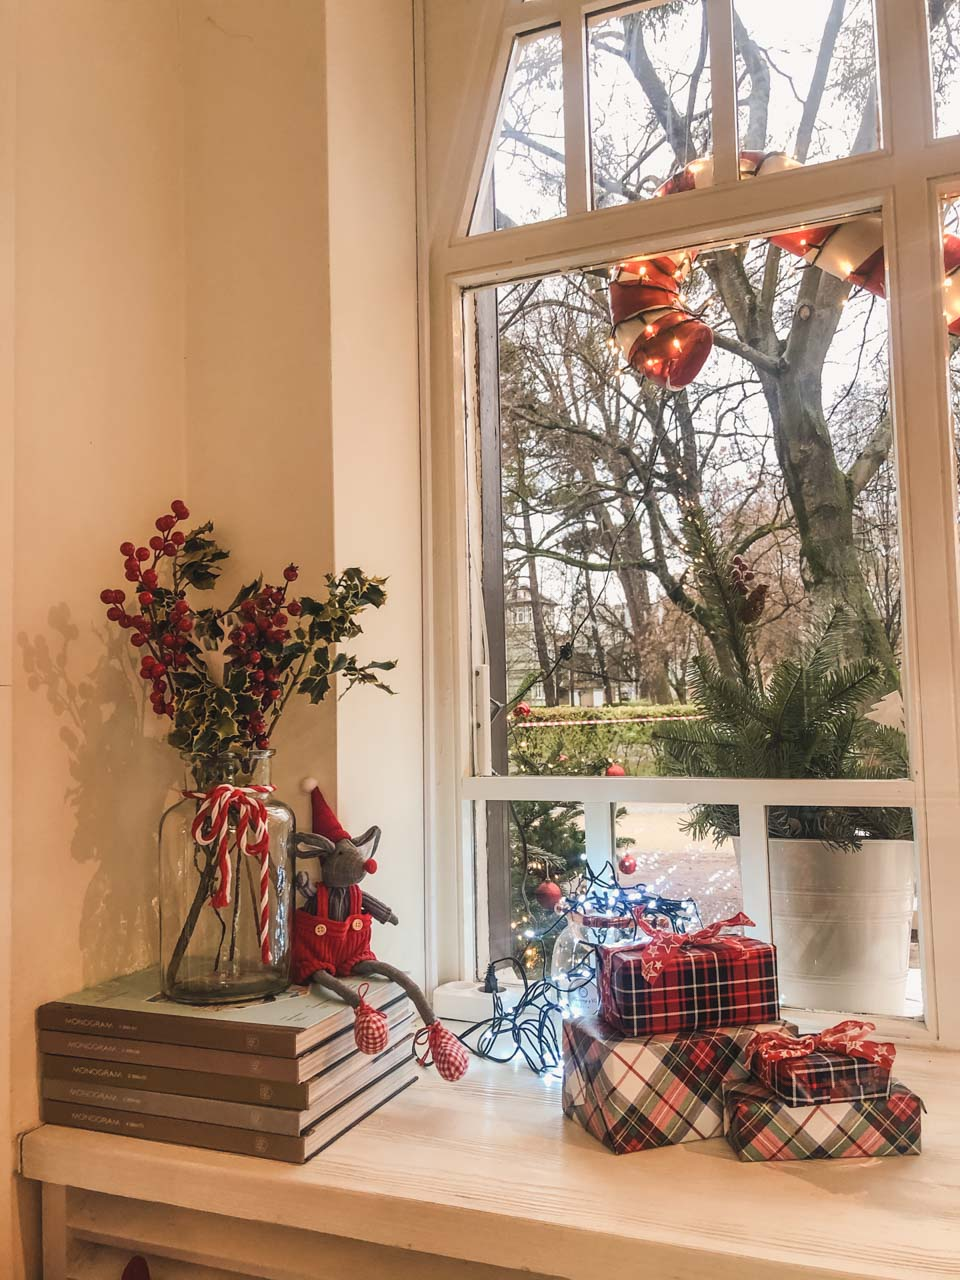 A couple of wrapped presents, a stack of books and a vase with holly on a window sill